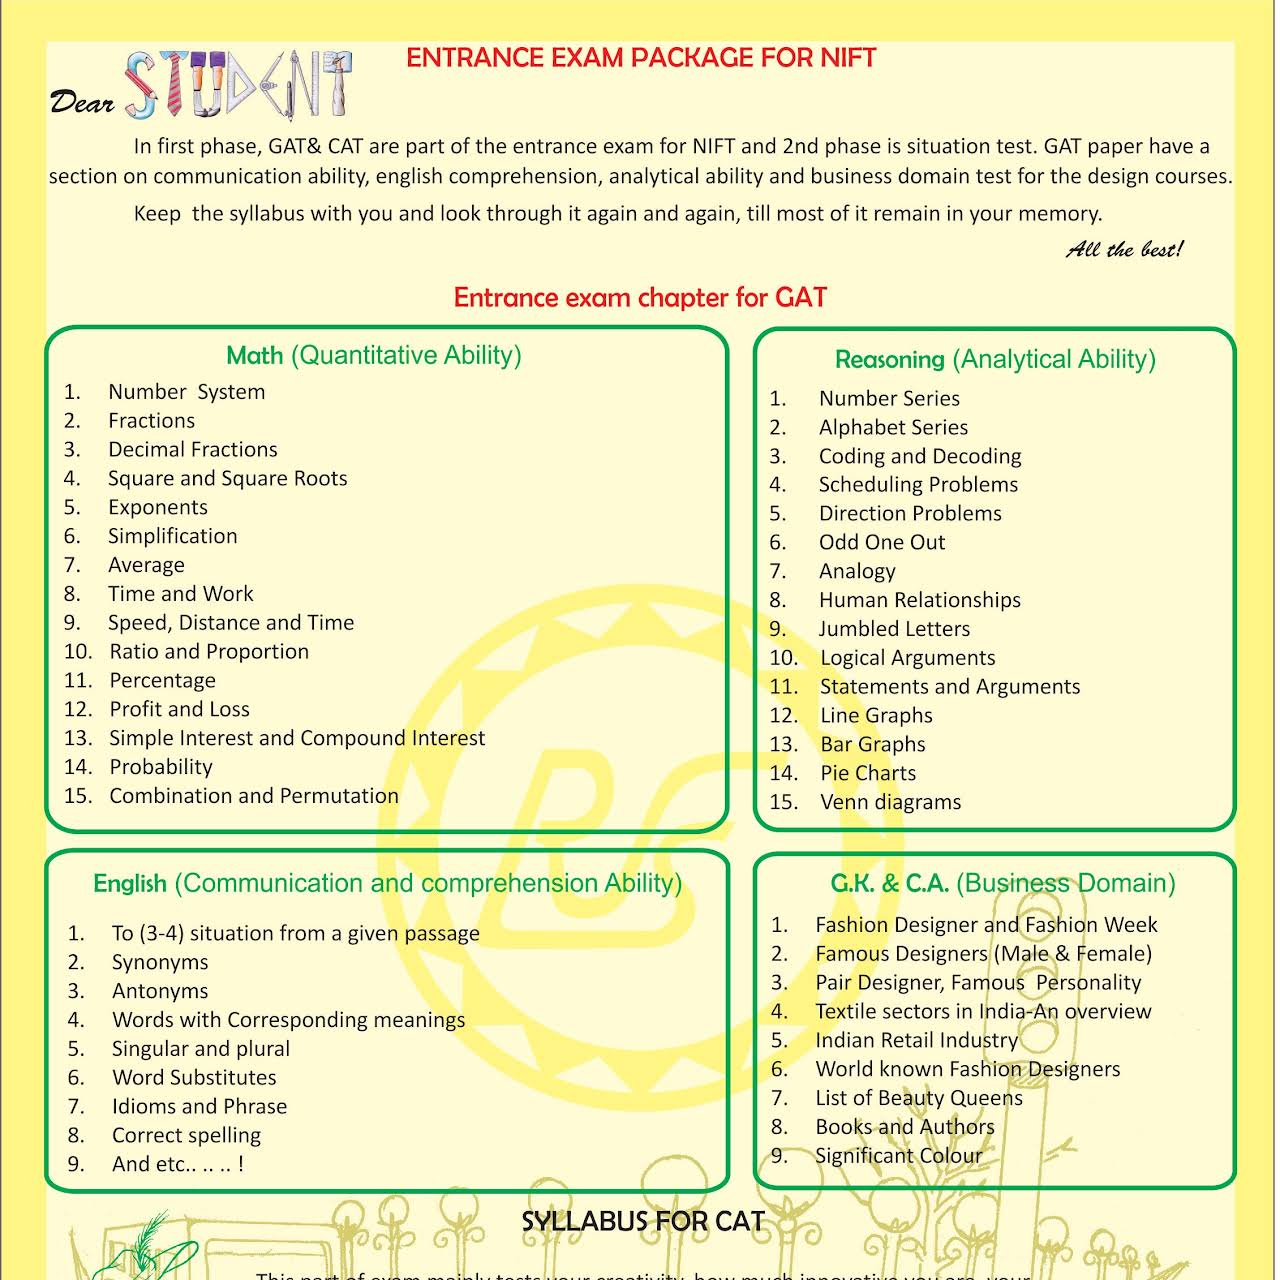 Best Nift Coaching In Patna Rfs Nift Nid Fashion Design School Specialized In Nift Coaching In Patna Nid Coaching Center And Its Exam Preparation Or Studio Test In Patna